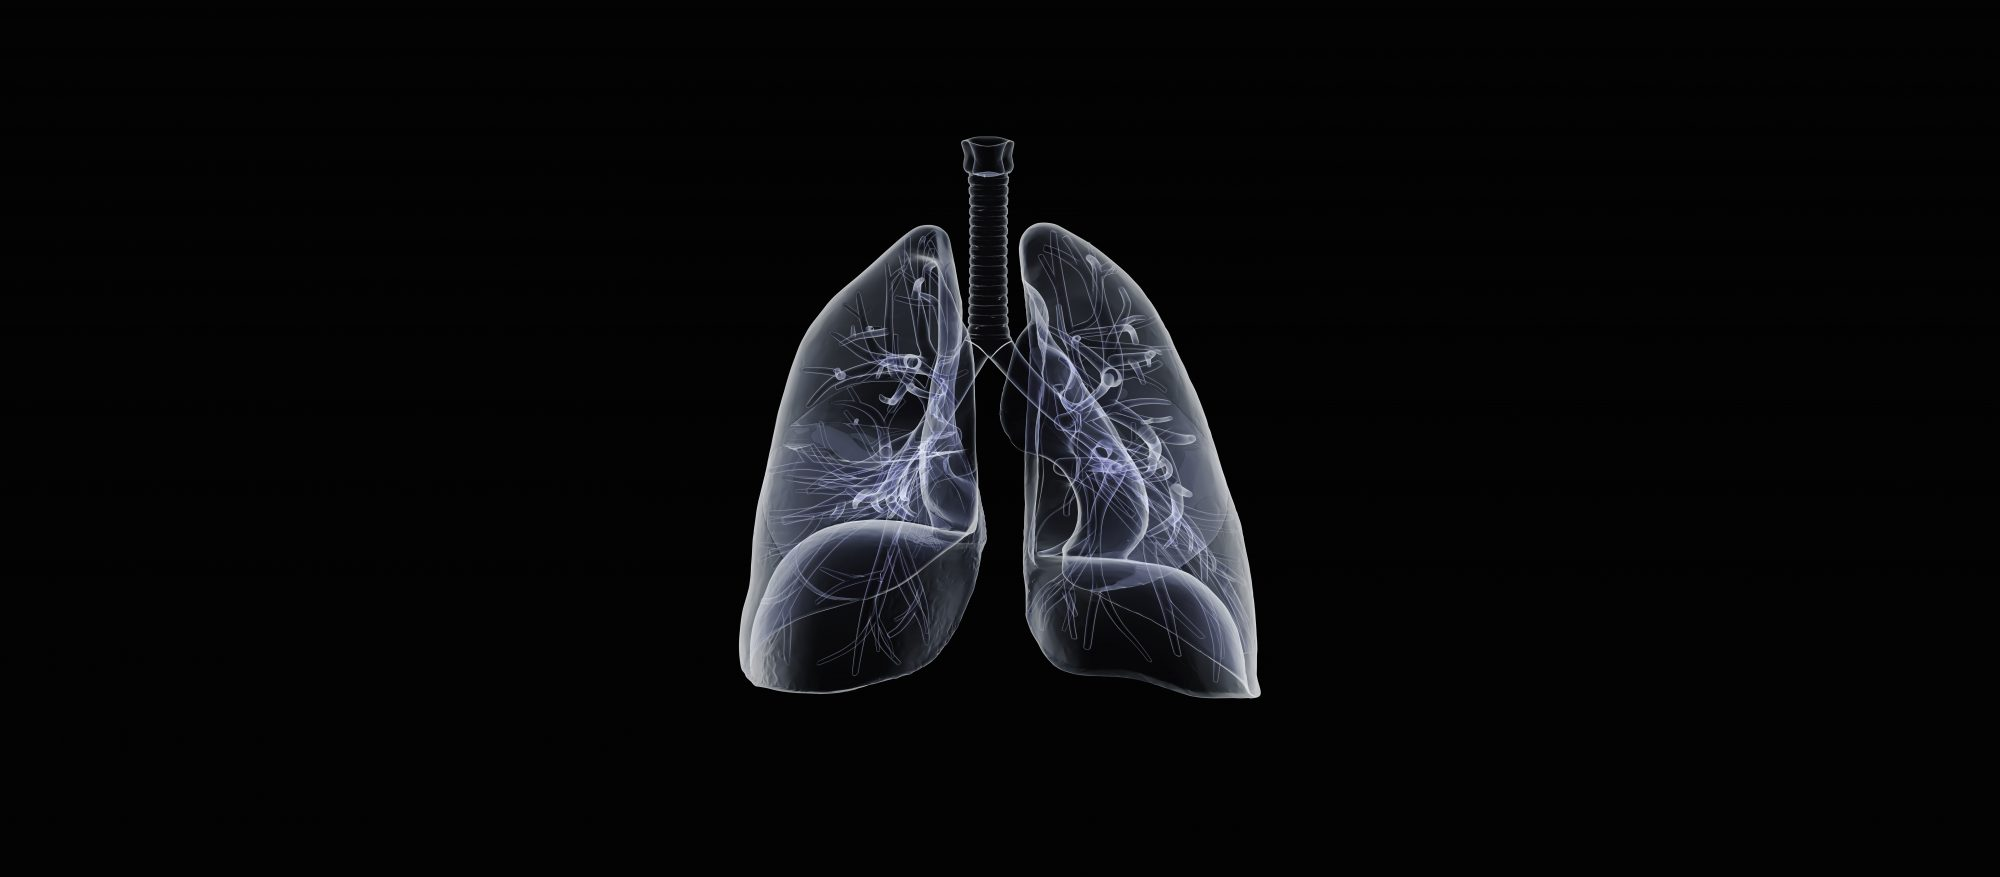 bronchitis-xray-lungs-bw